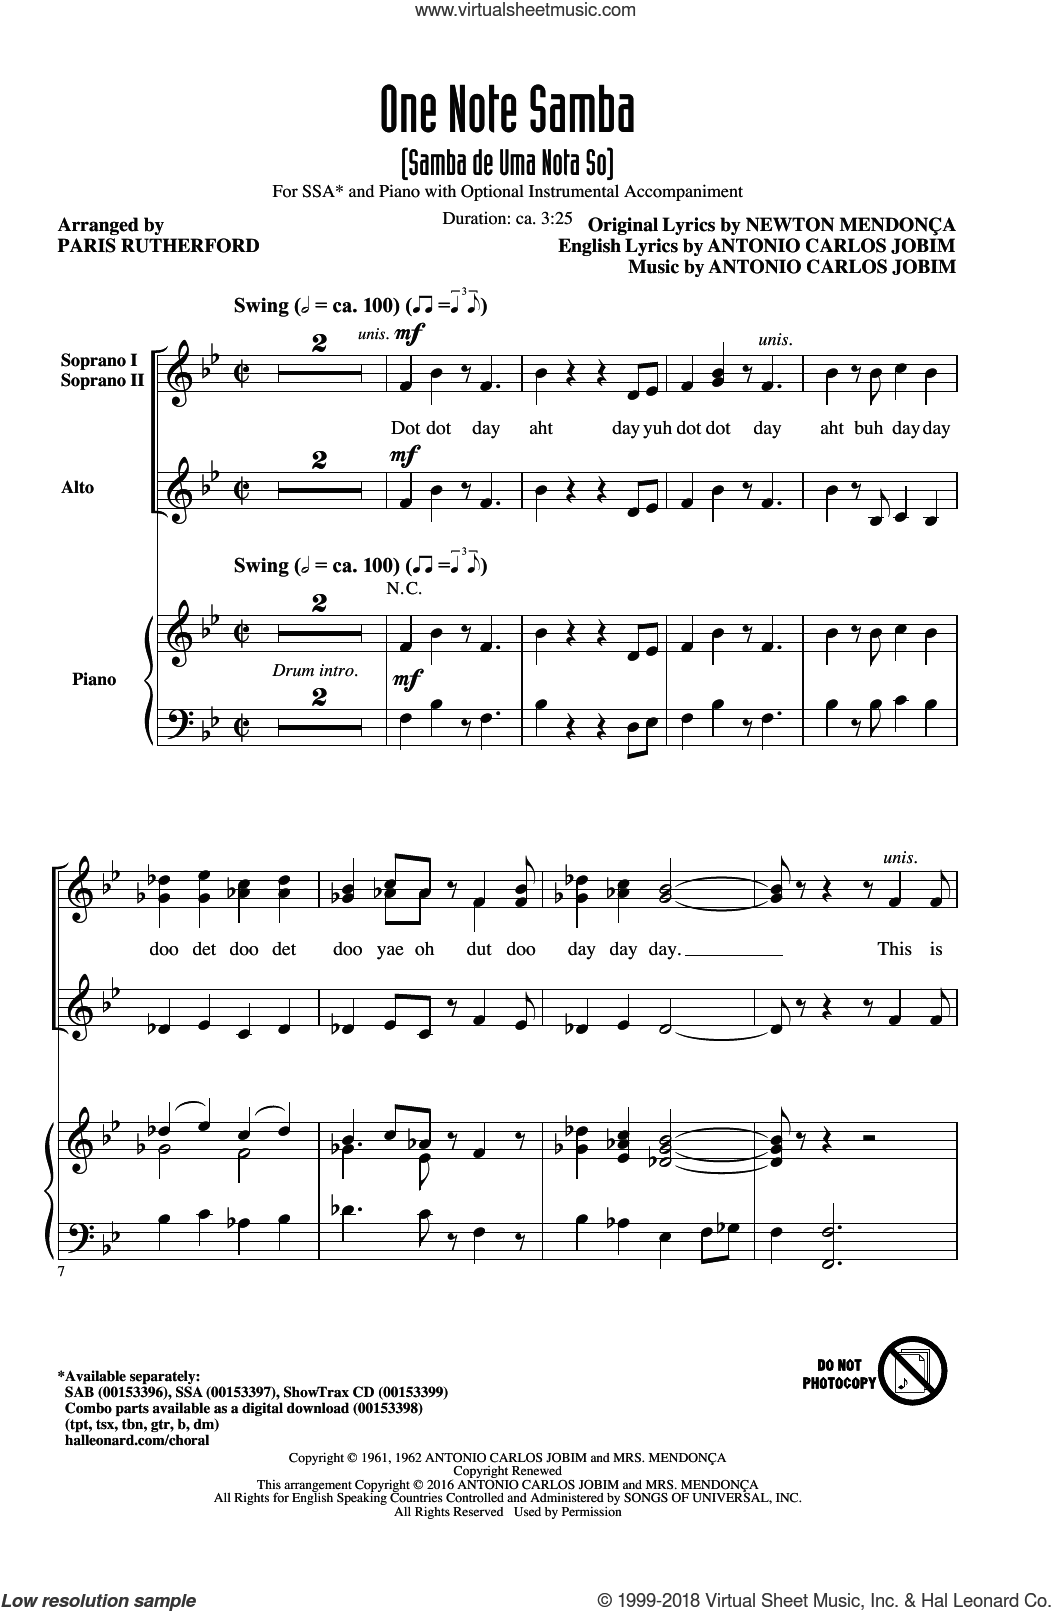 One Note Samba (Samba De Uma Nota So) sheet music for choir (soprano voice, alto voice, choir) by Pat Thomas, Paris Rutherford, Antonio Carlos Jobim and Newton Mendonca. Score Image Preview.